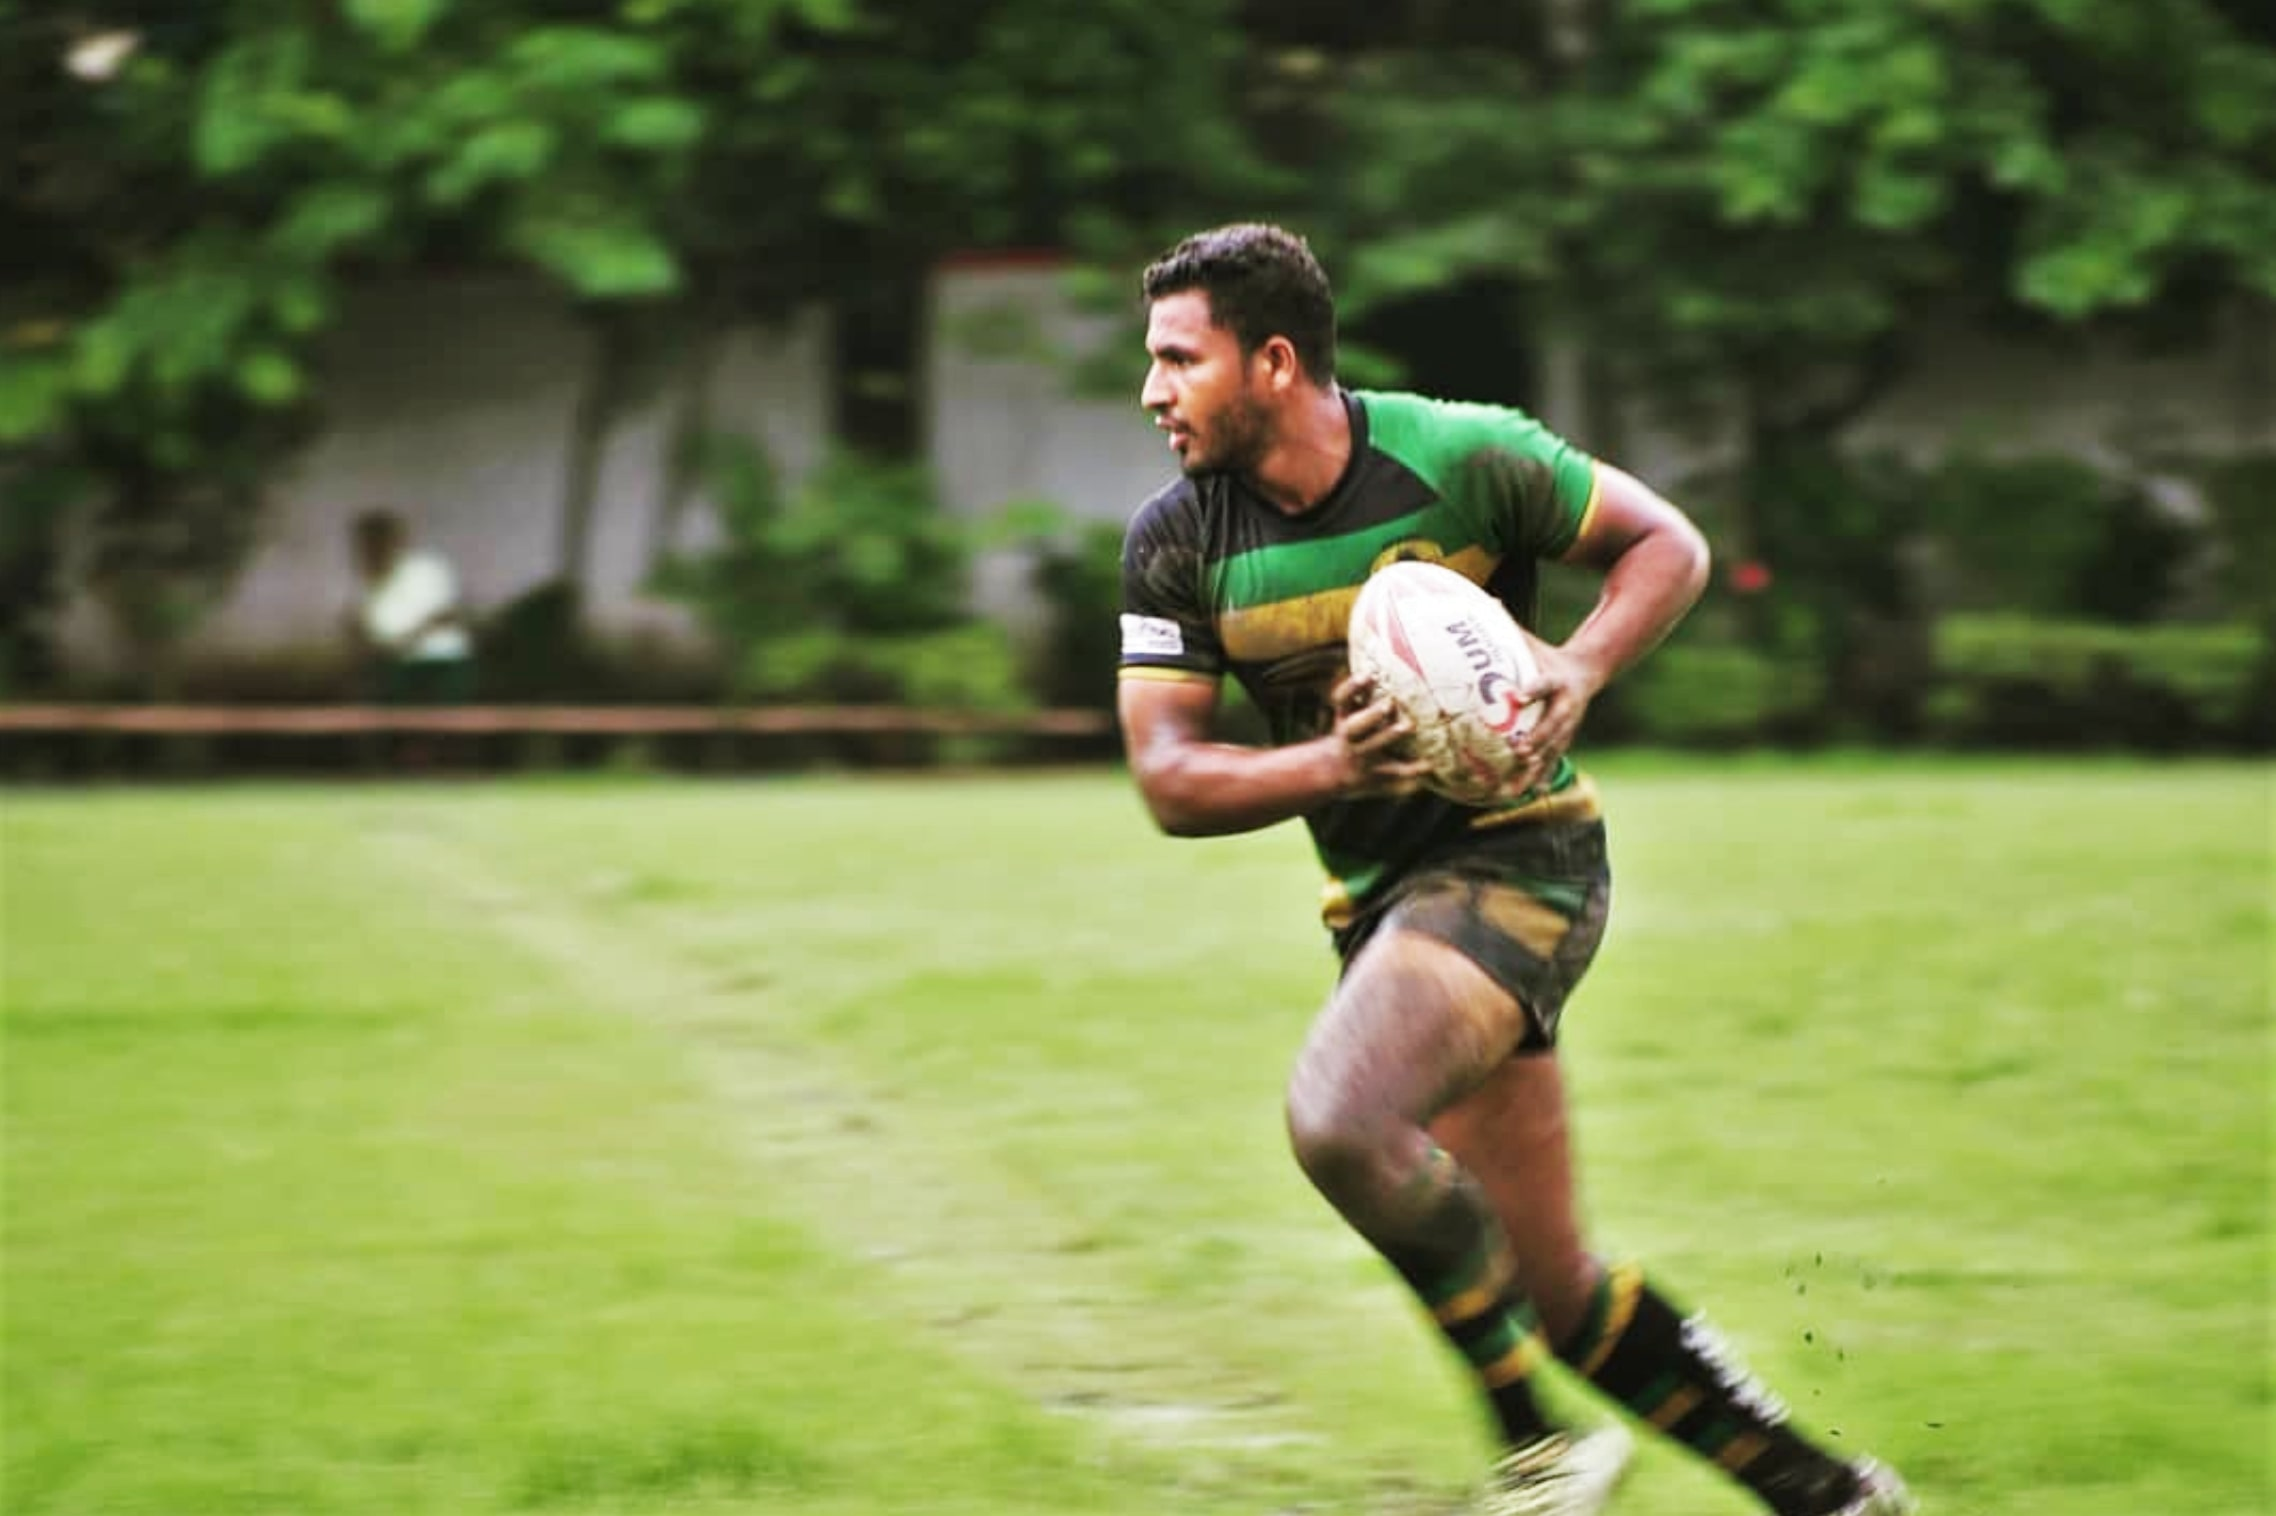 Akash Balmiki- Growing Up With Rugby